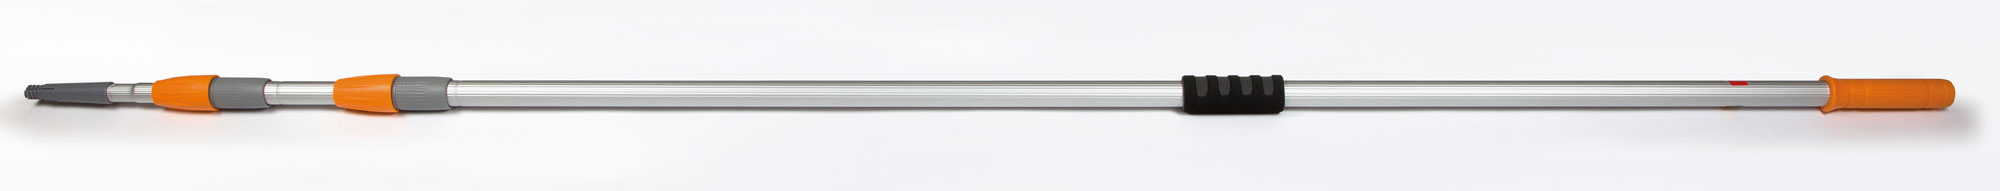 Easy Clean, long extendible telescopic handle 6 meters